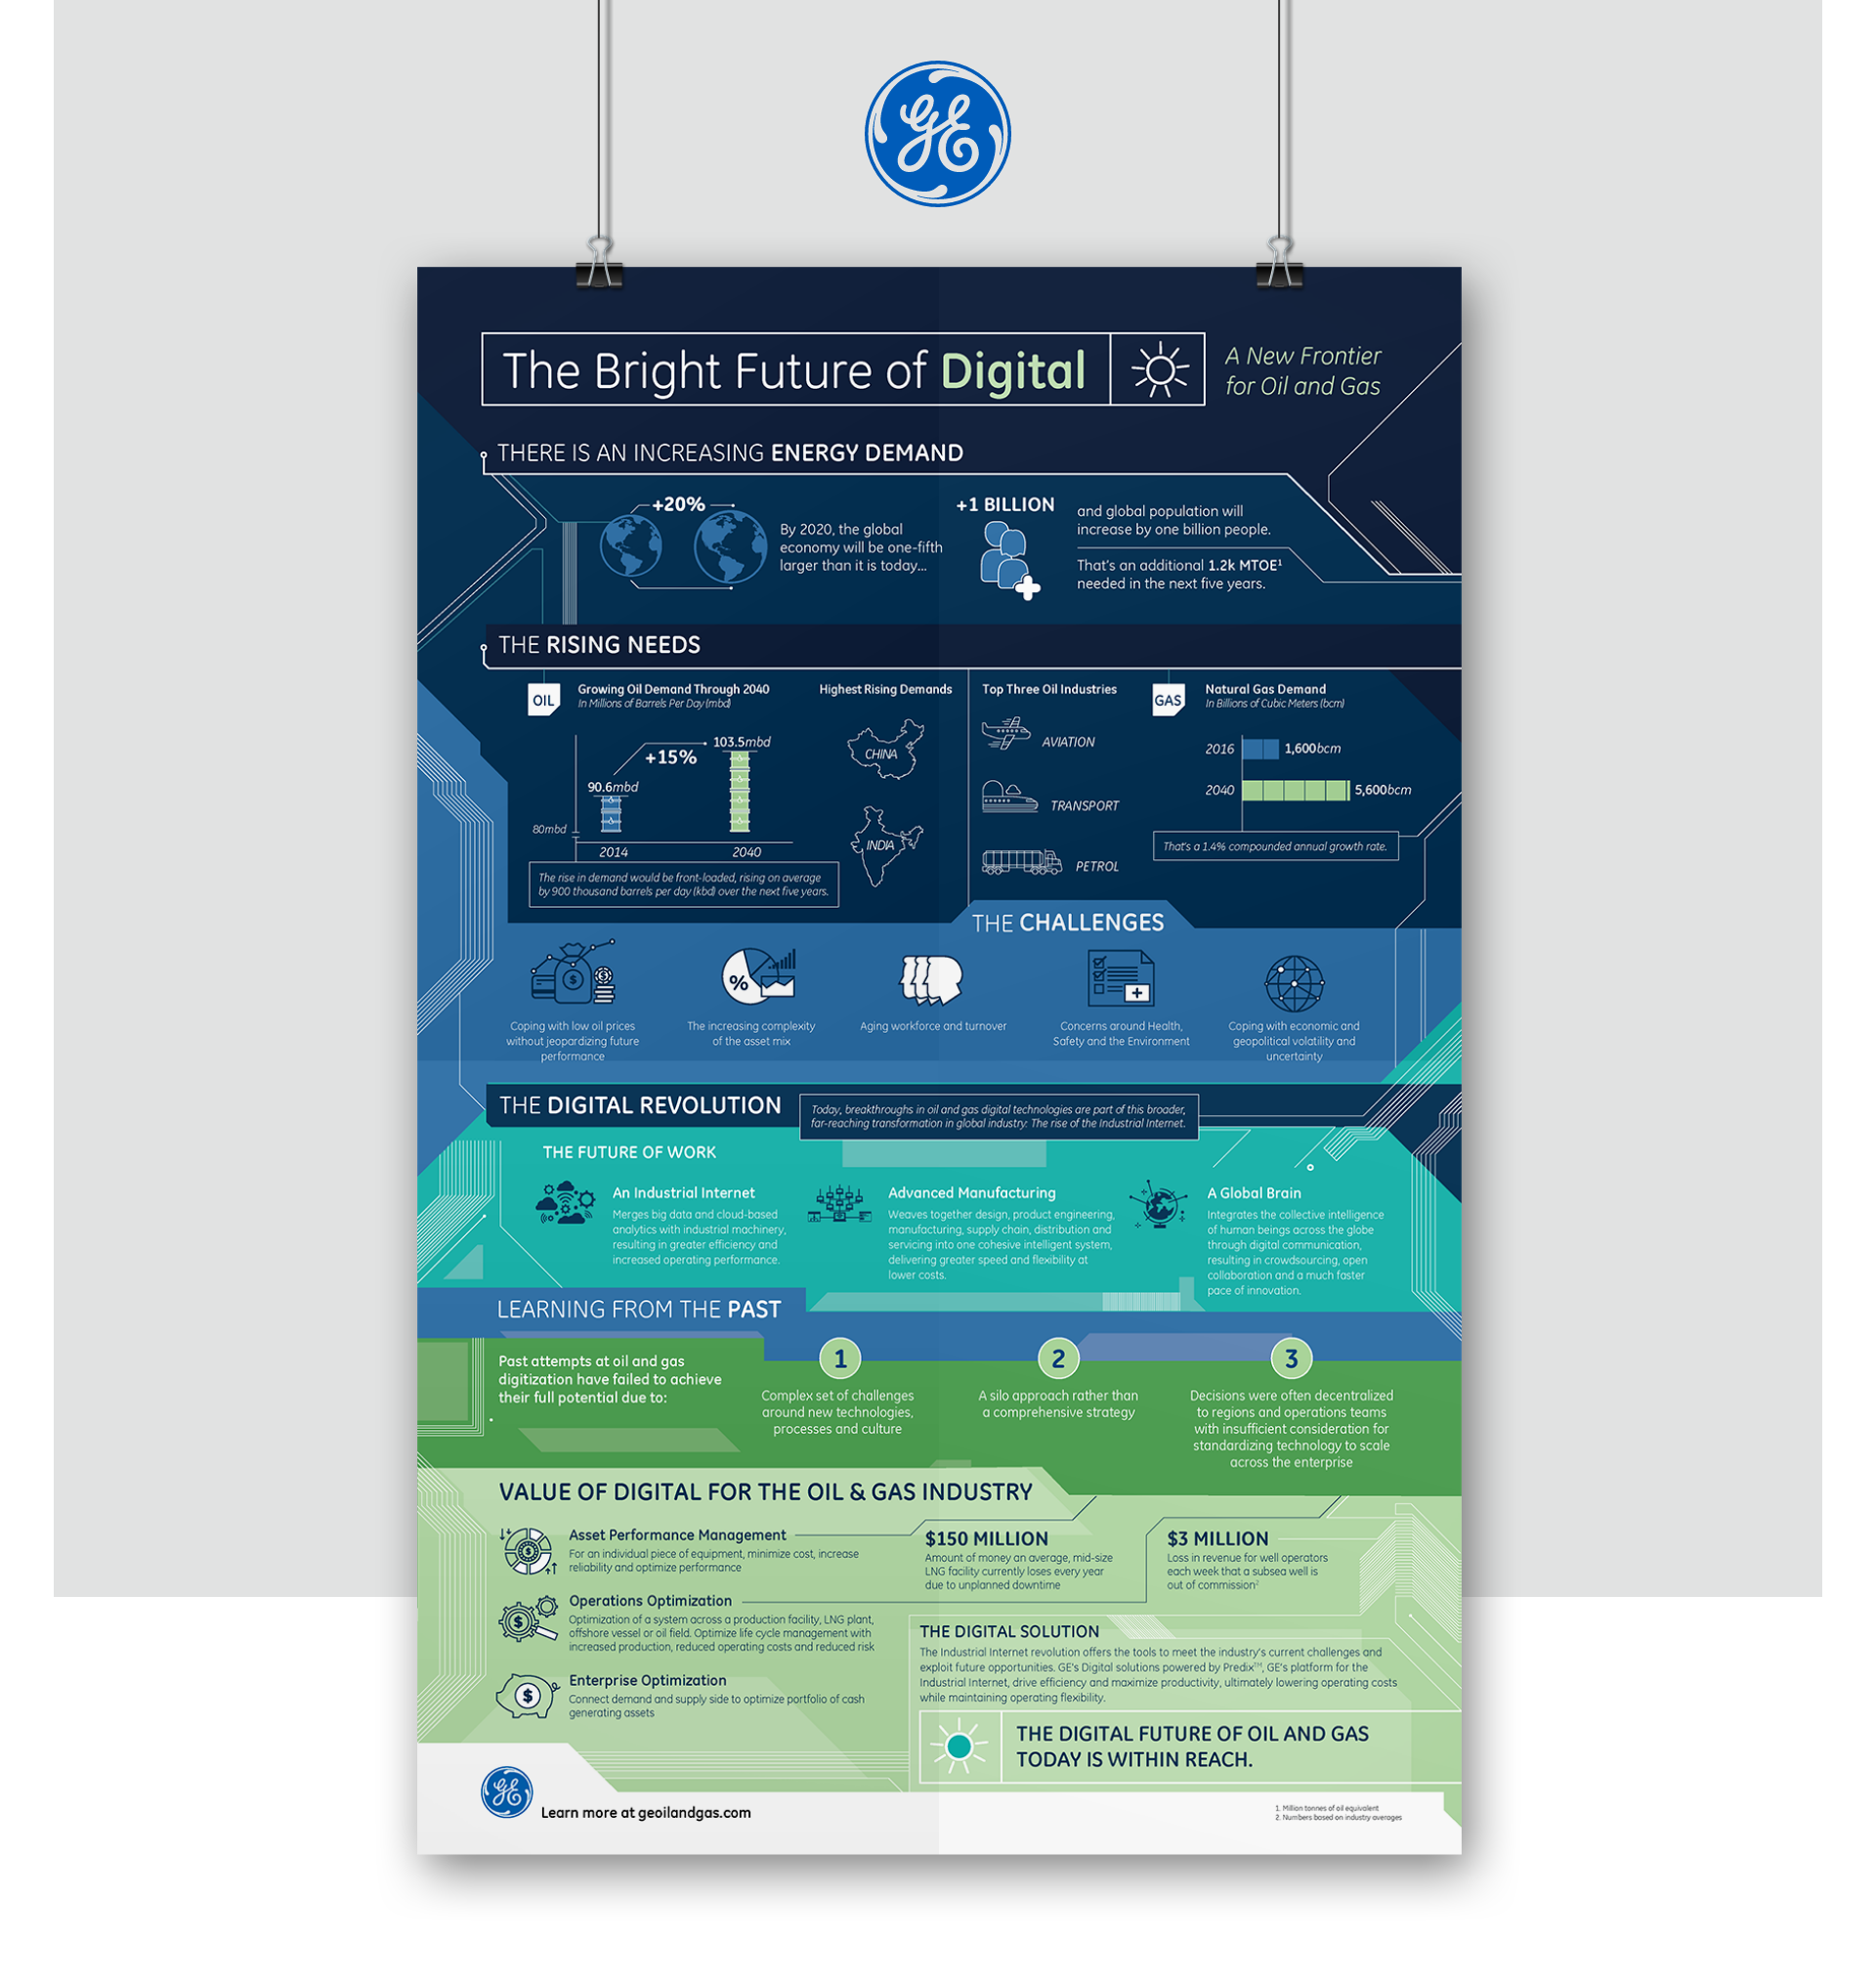 The Bright Future of Digital: A New Frontier for Oil and Gas Infographic